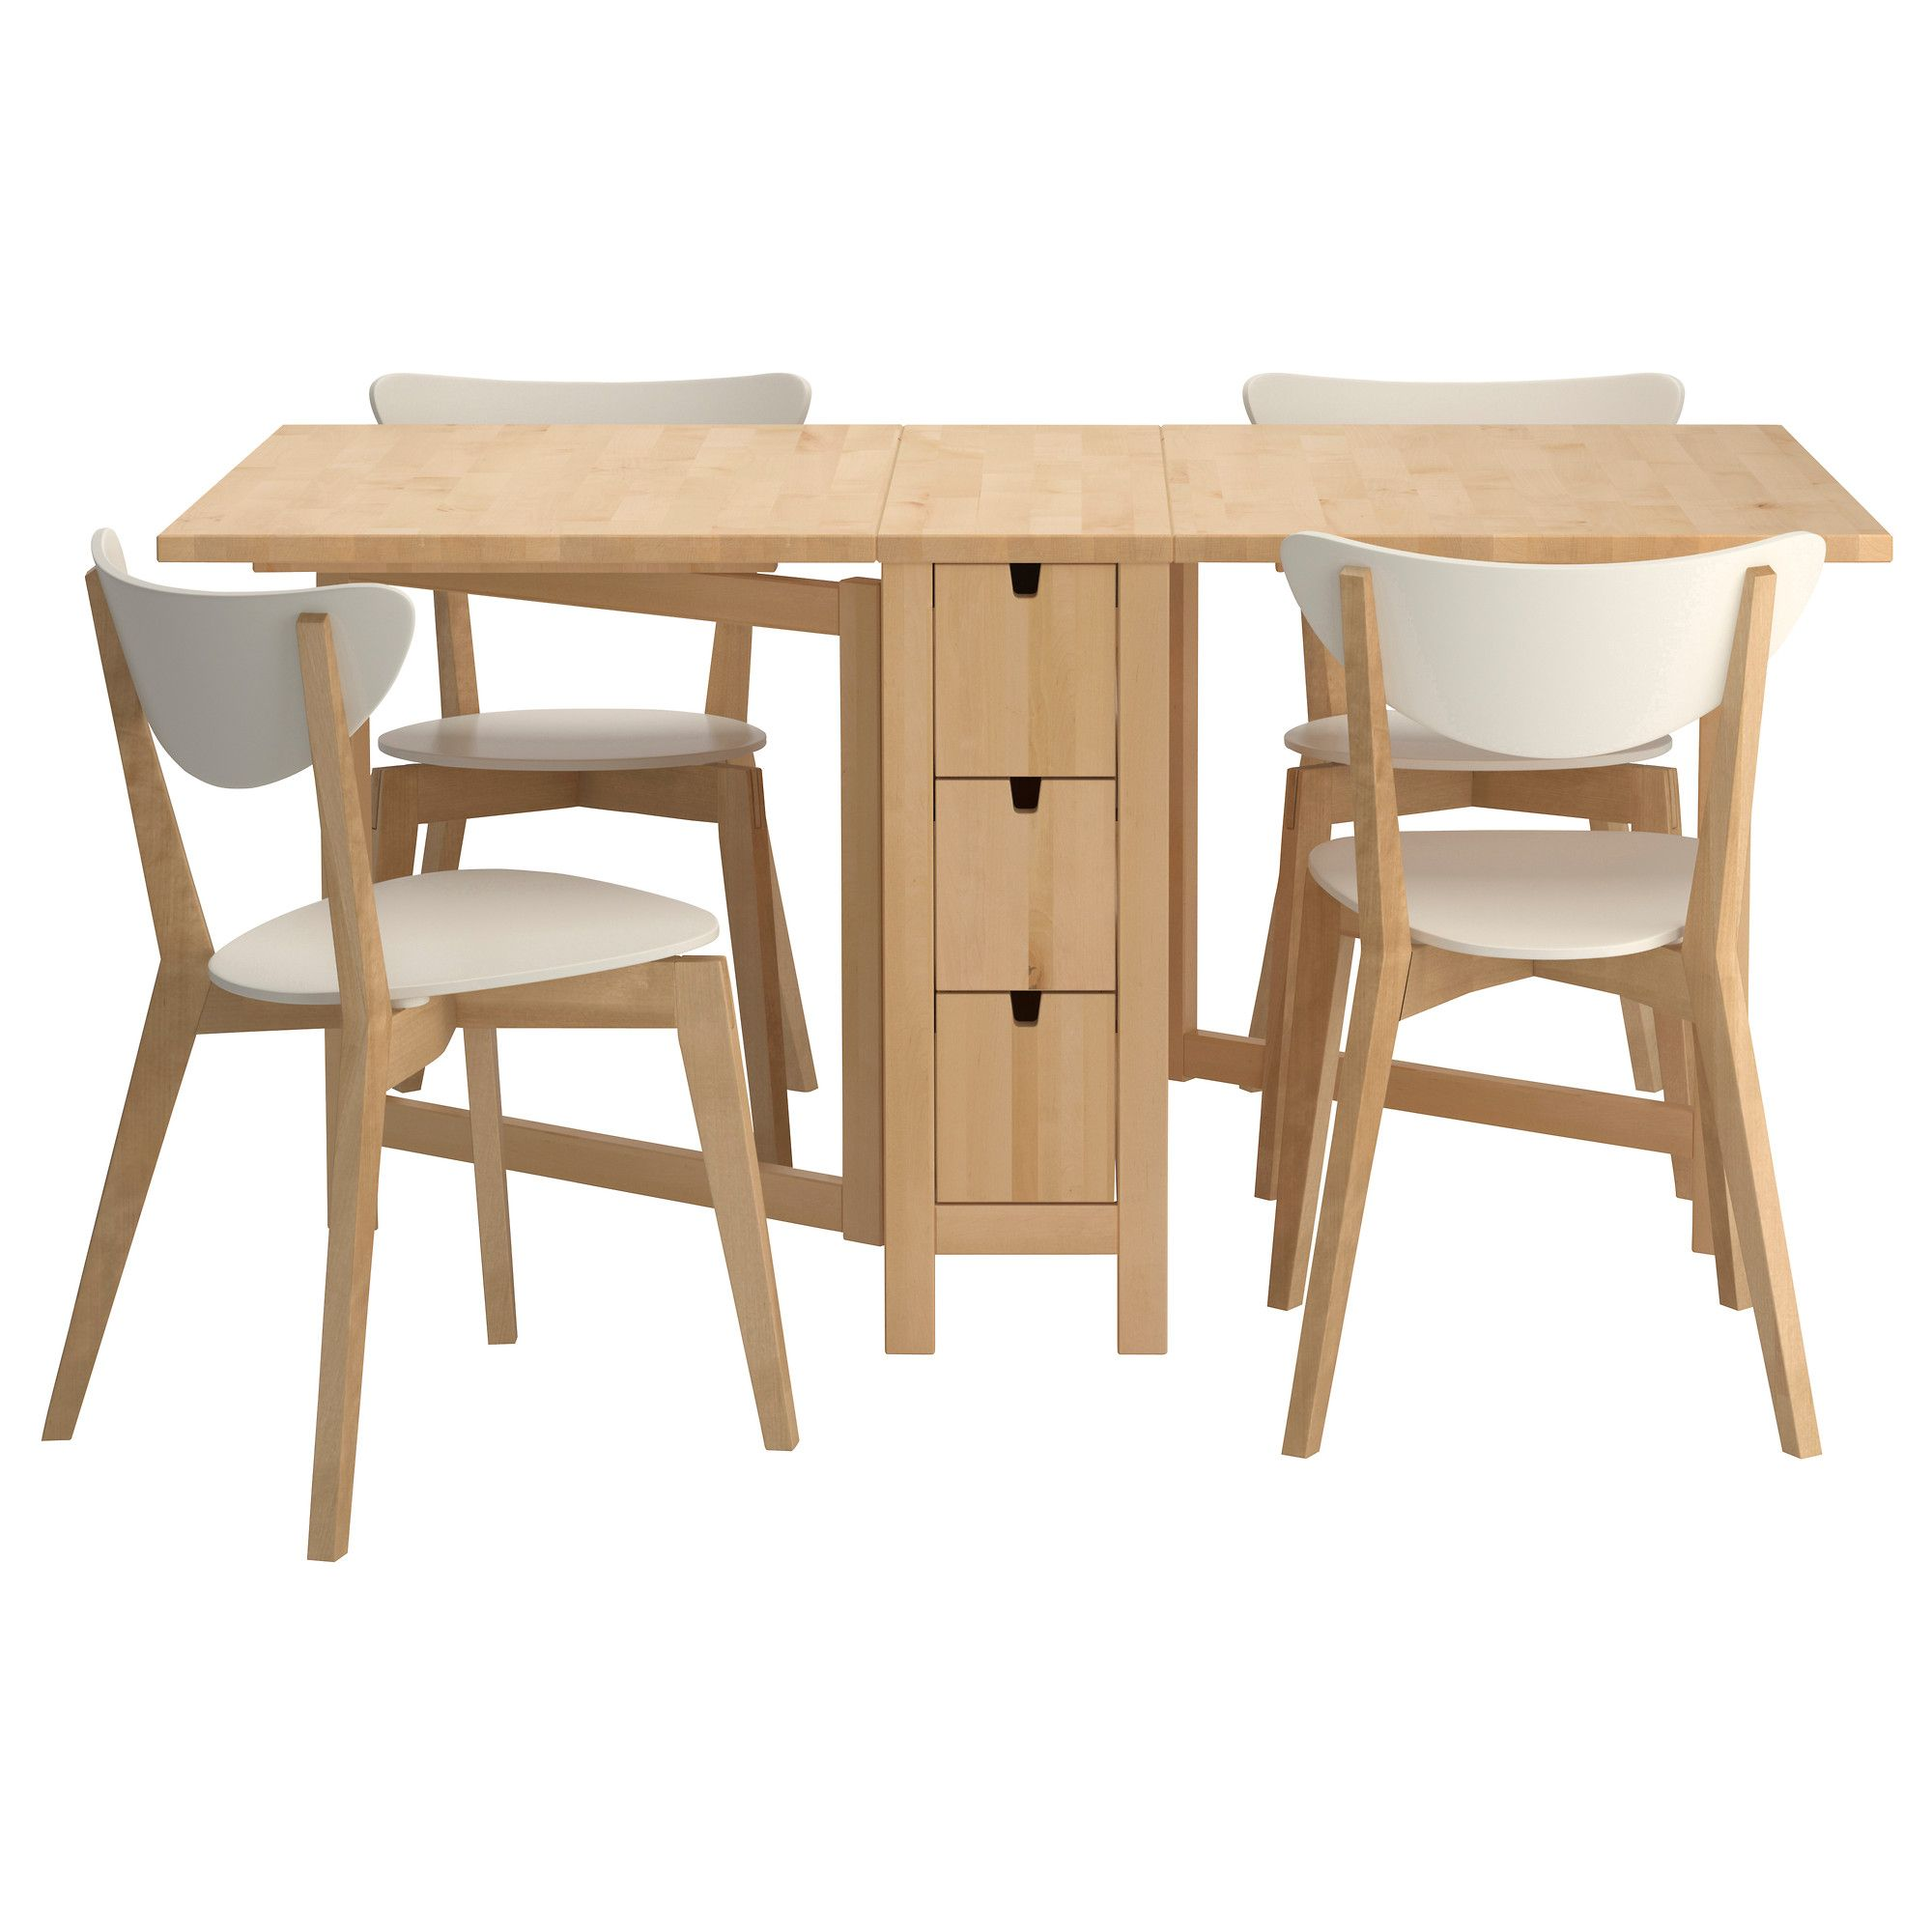 Norden nordmyra table and 4 chairs ikea for the love for Kitchen dining room chairs